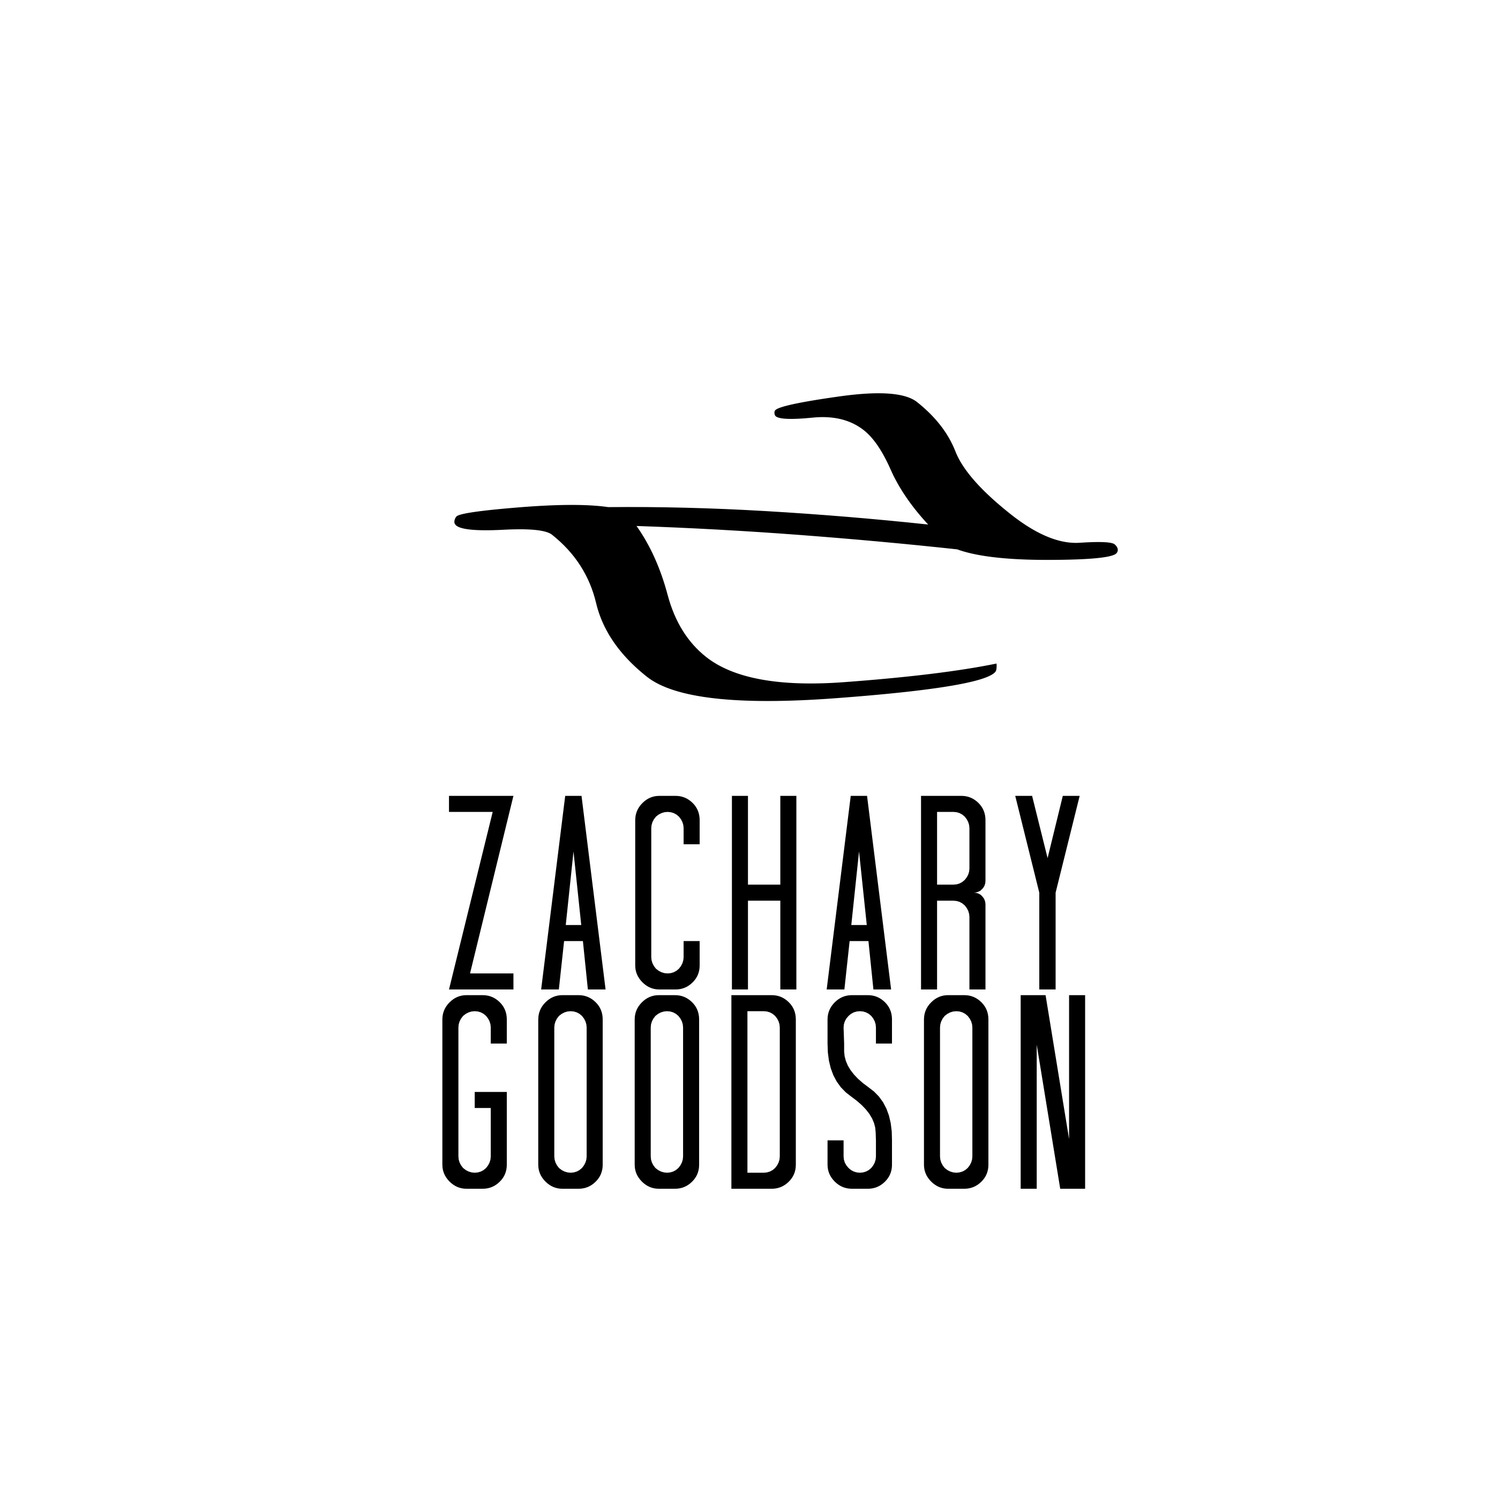 Zachary Goodson